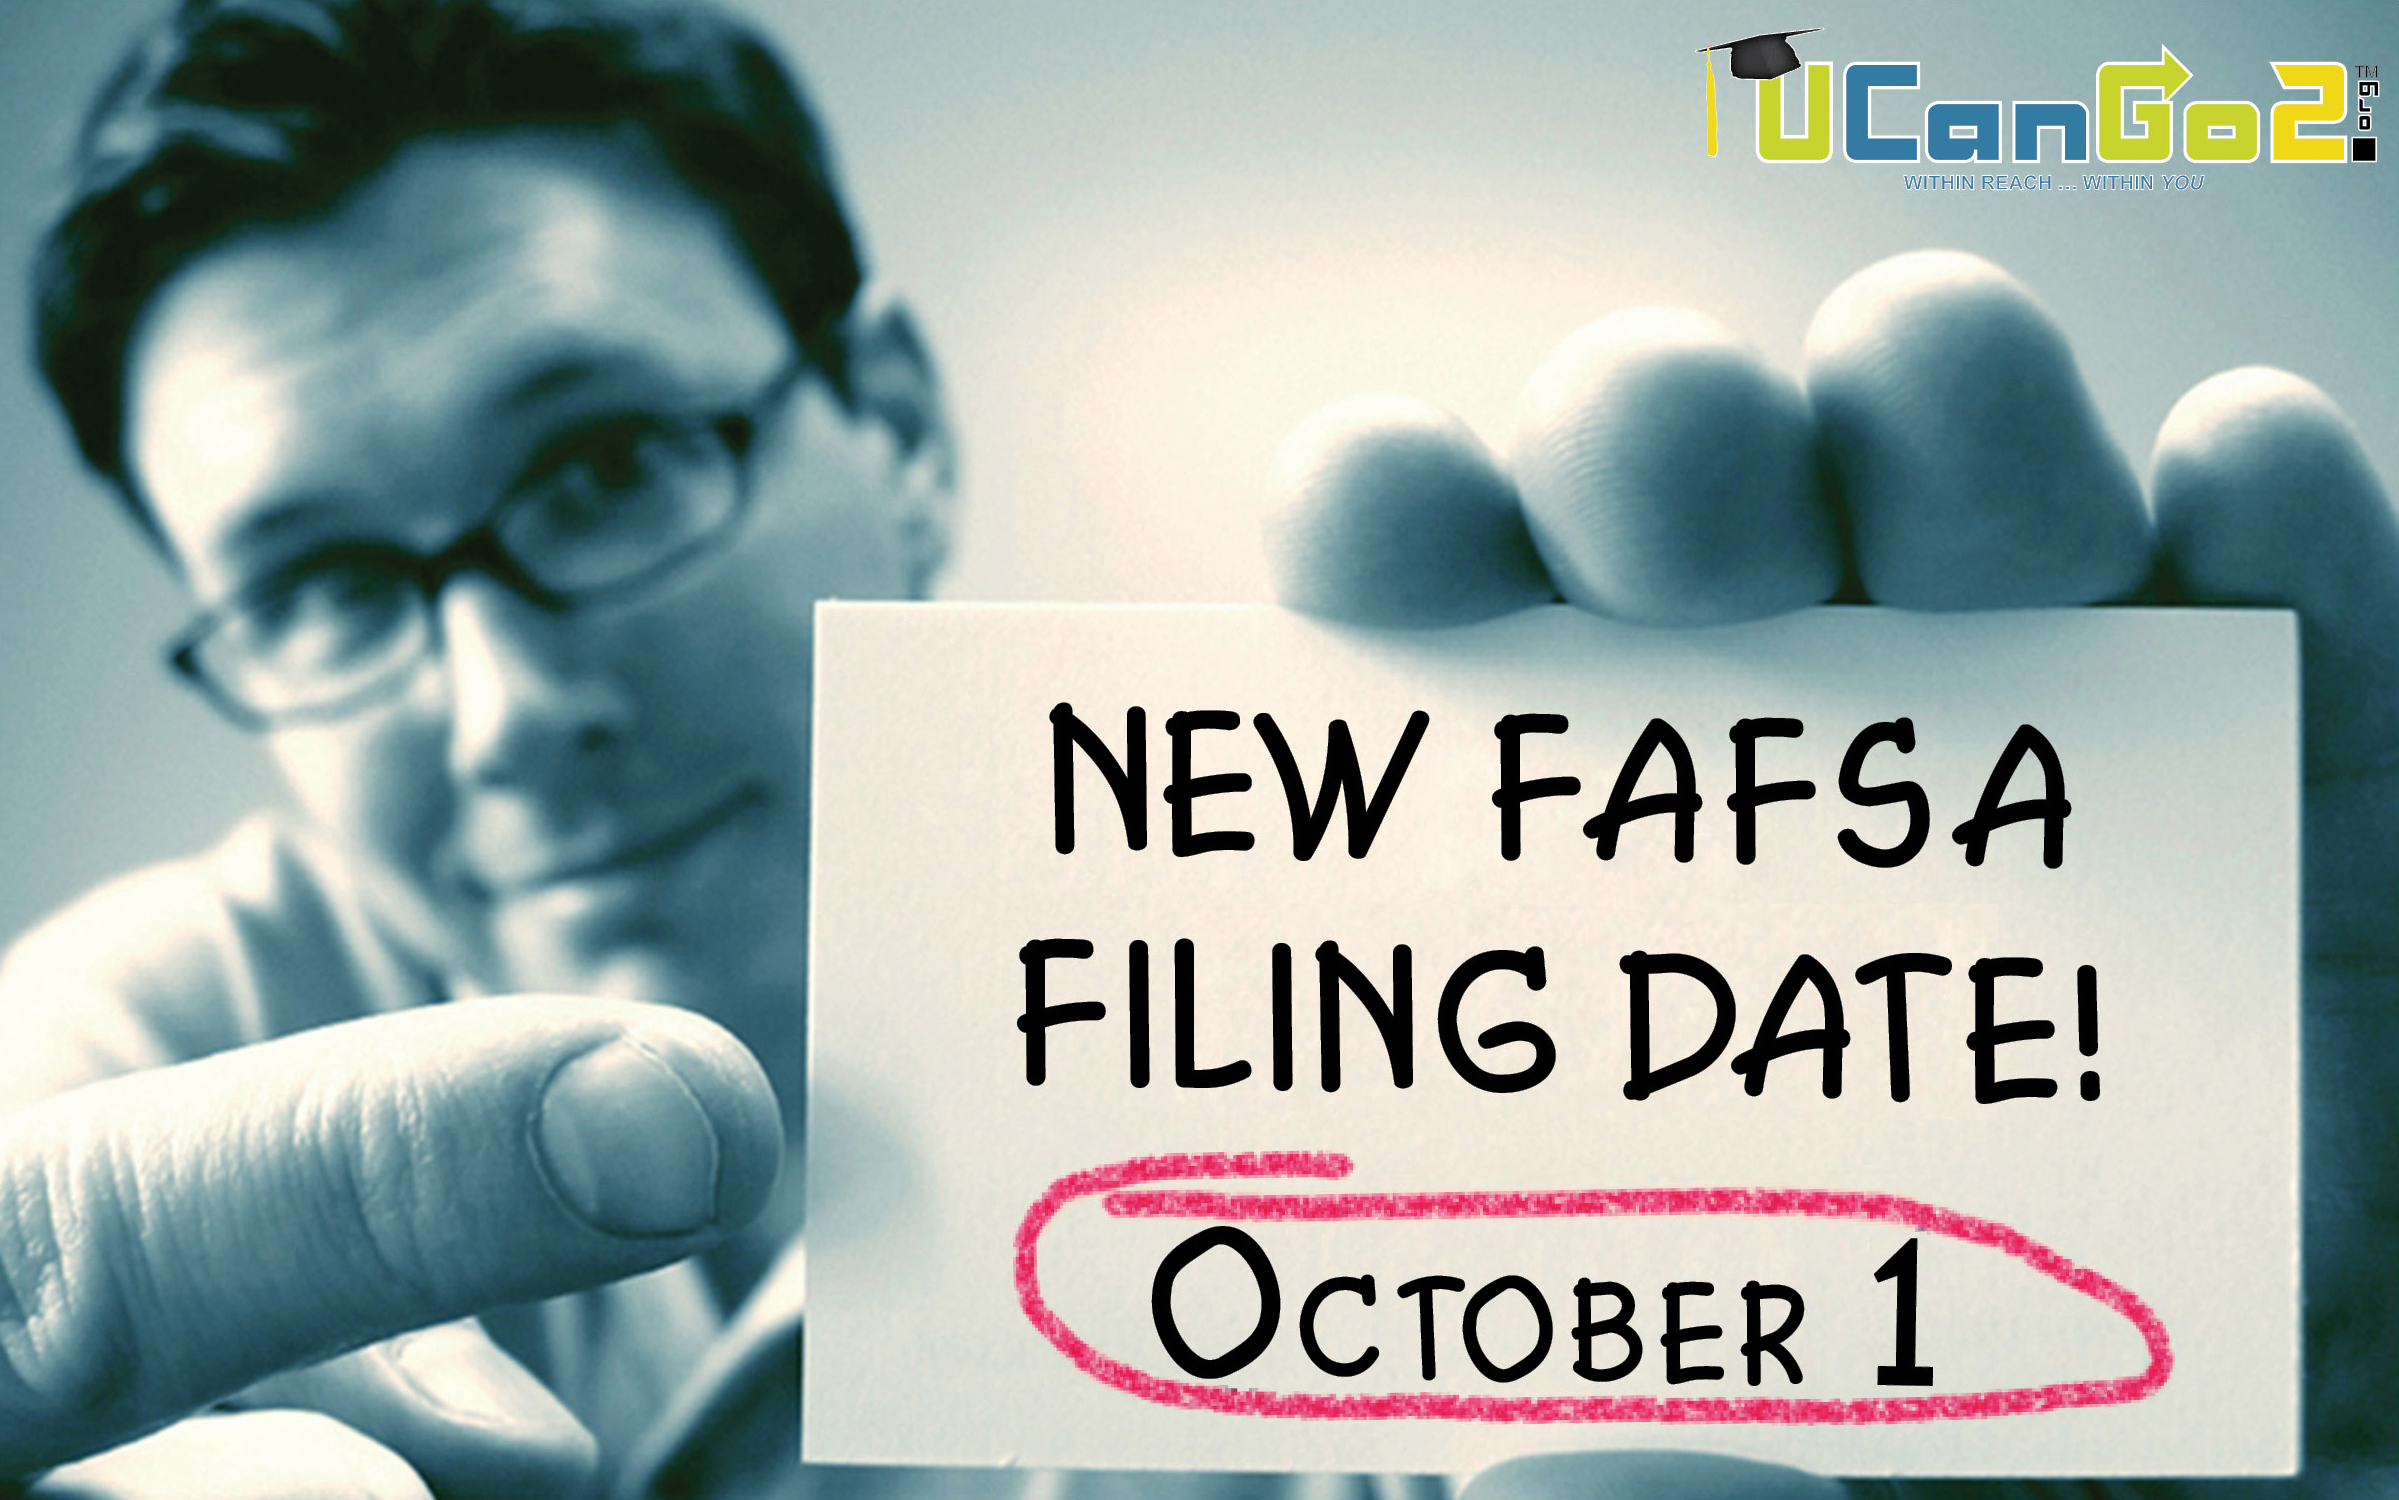 The new FAFSA filing date is October 1. Learn more at Start With FAFSA dot org.